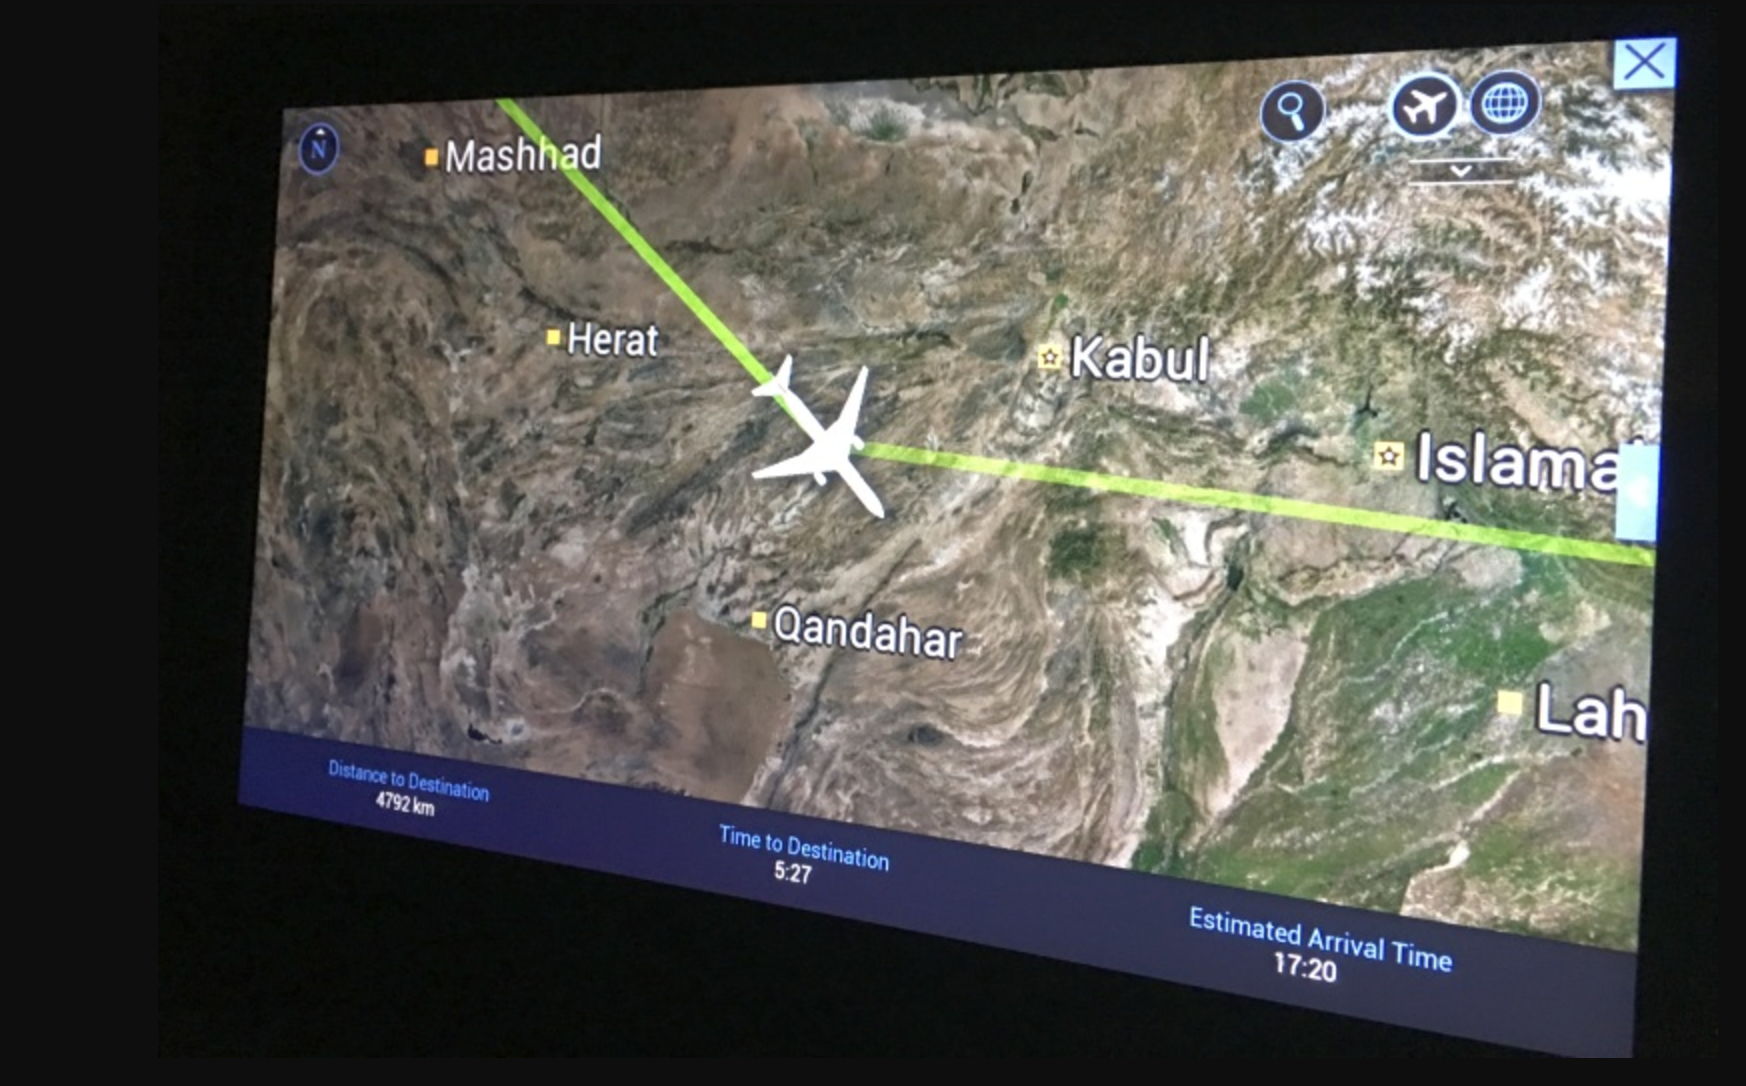 New overflight charges for Kabul FIR